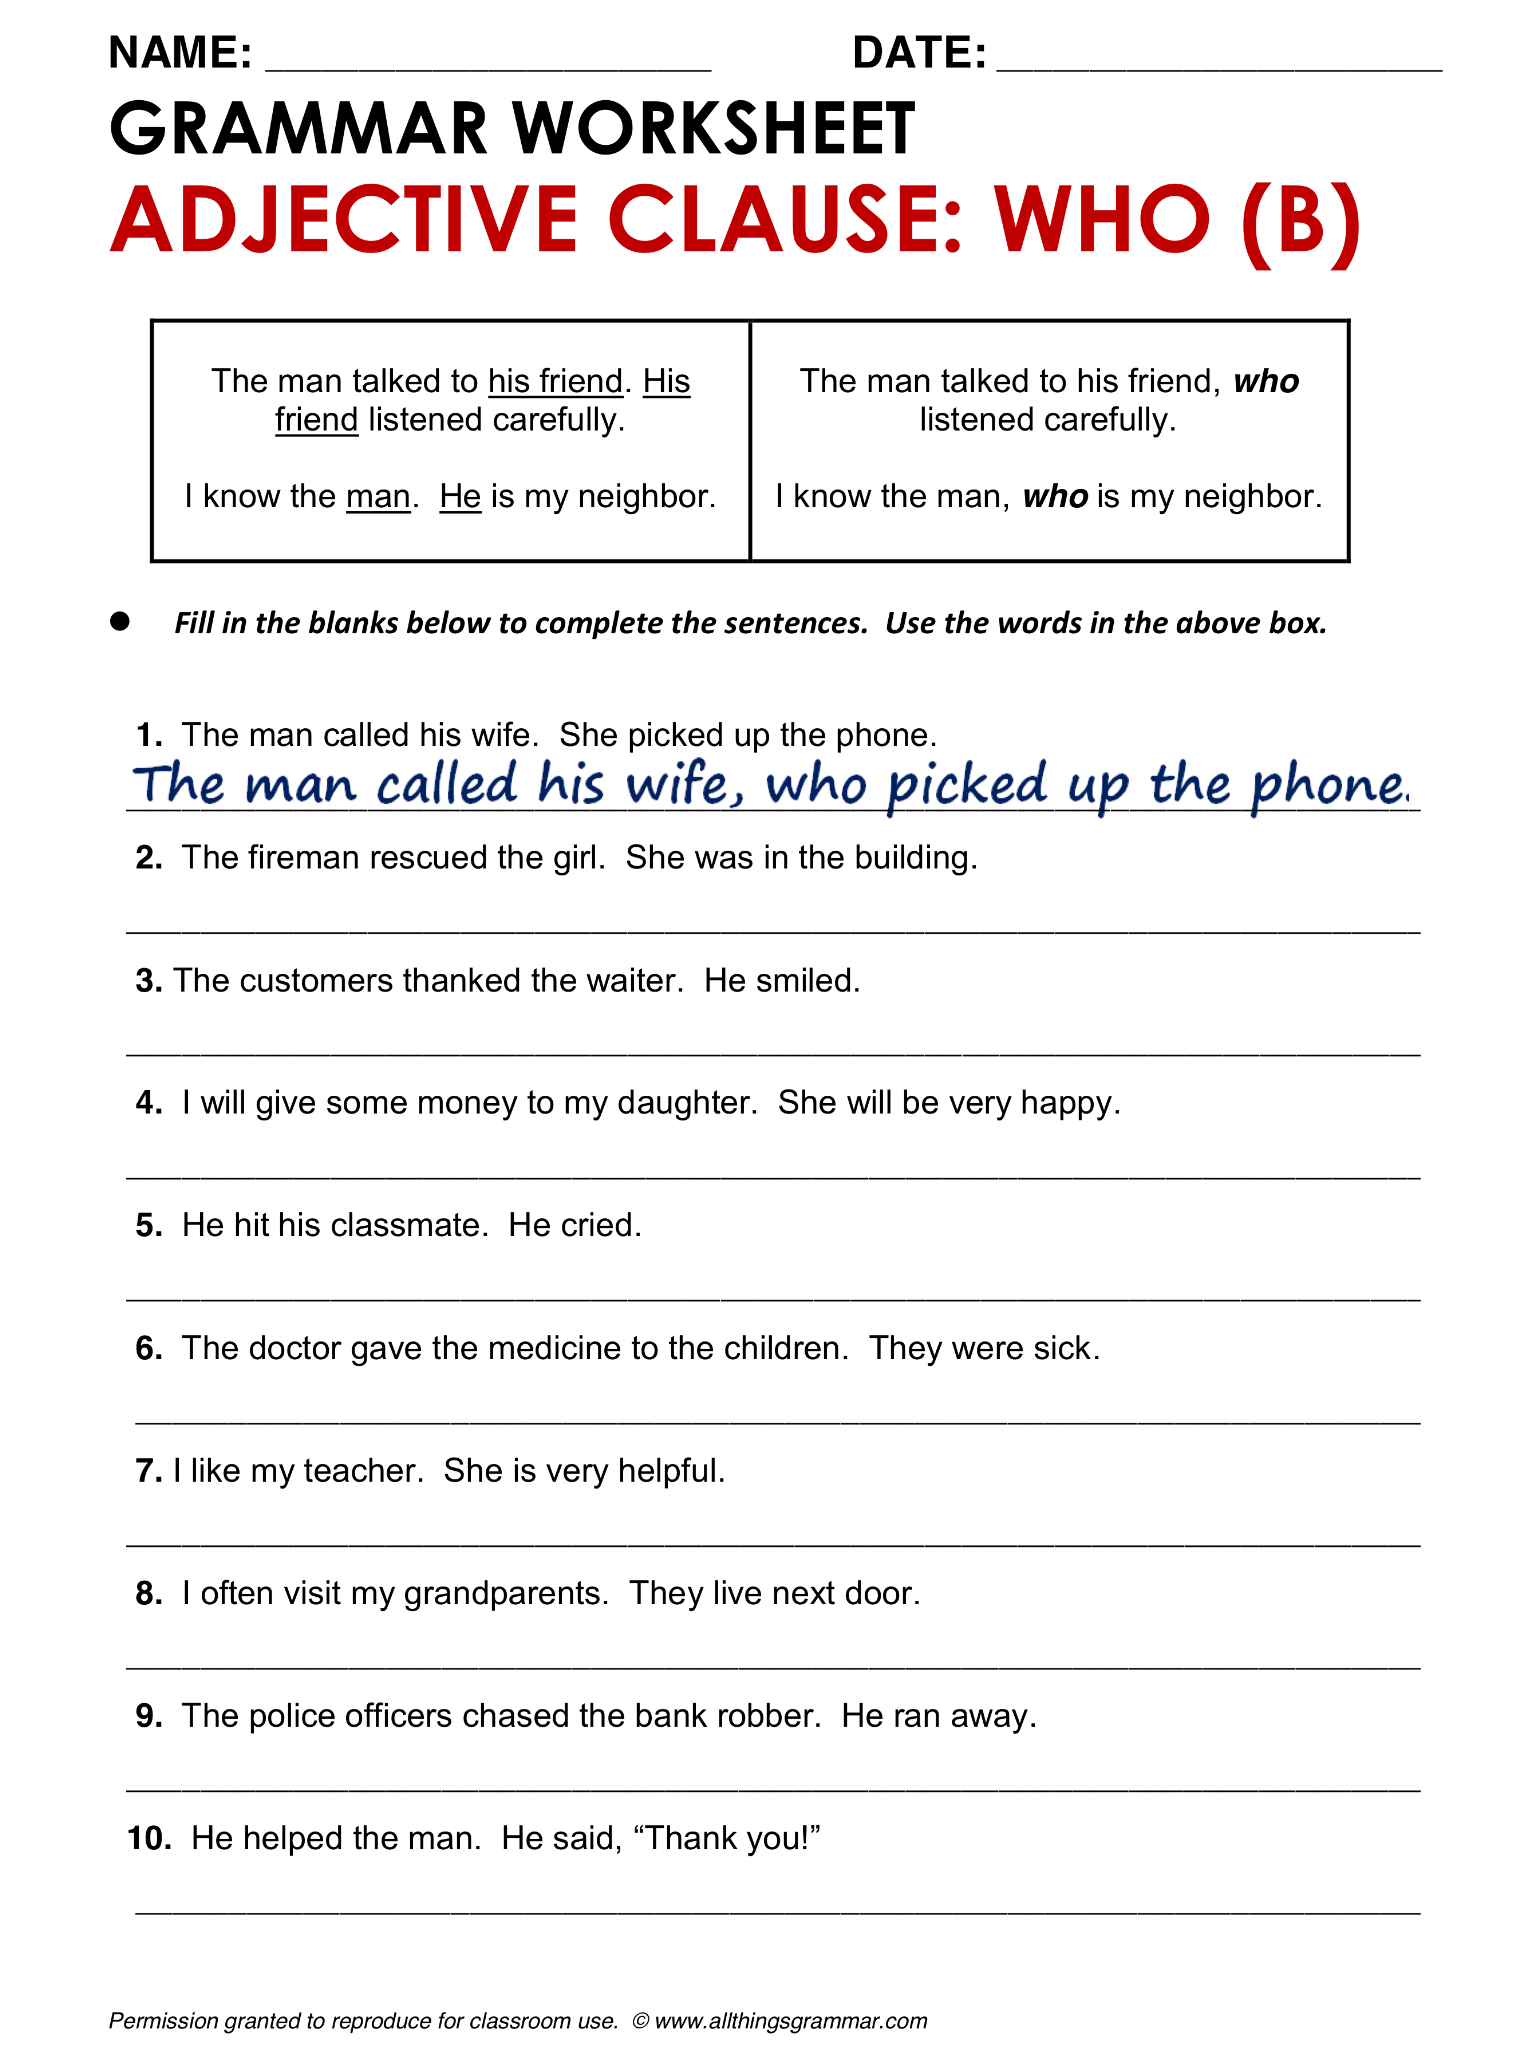 Diagramming Relative Pronouns (Adjective Clauses)